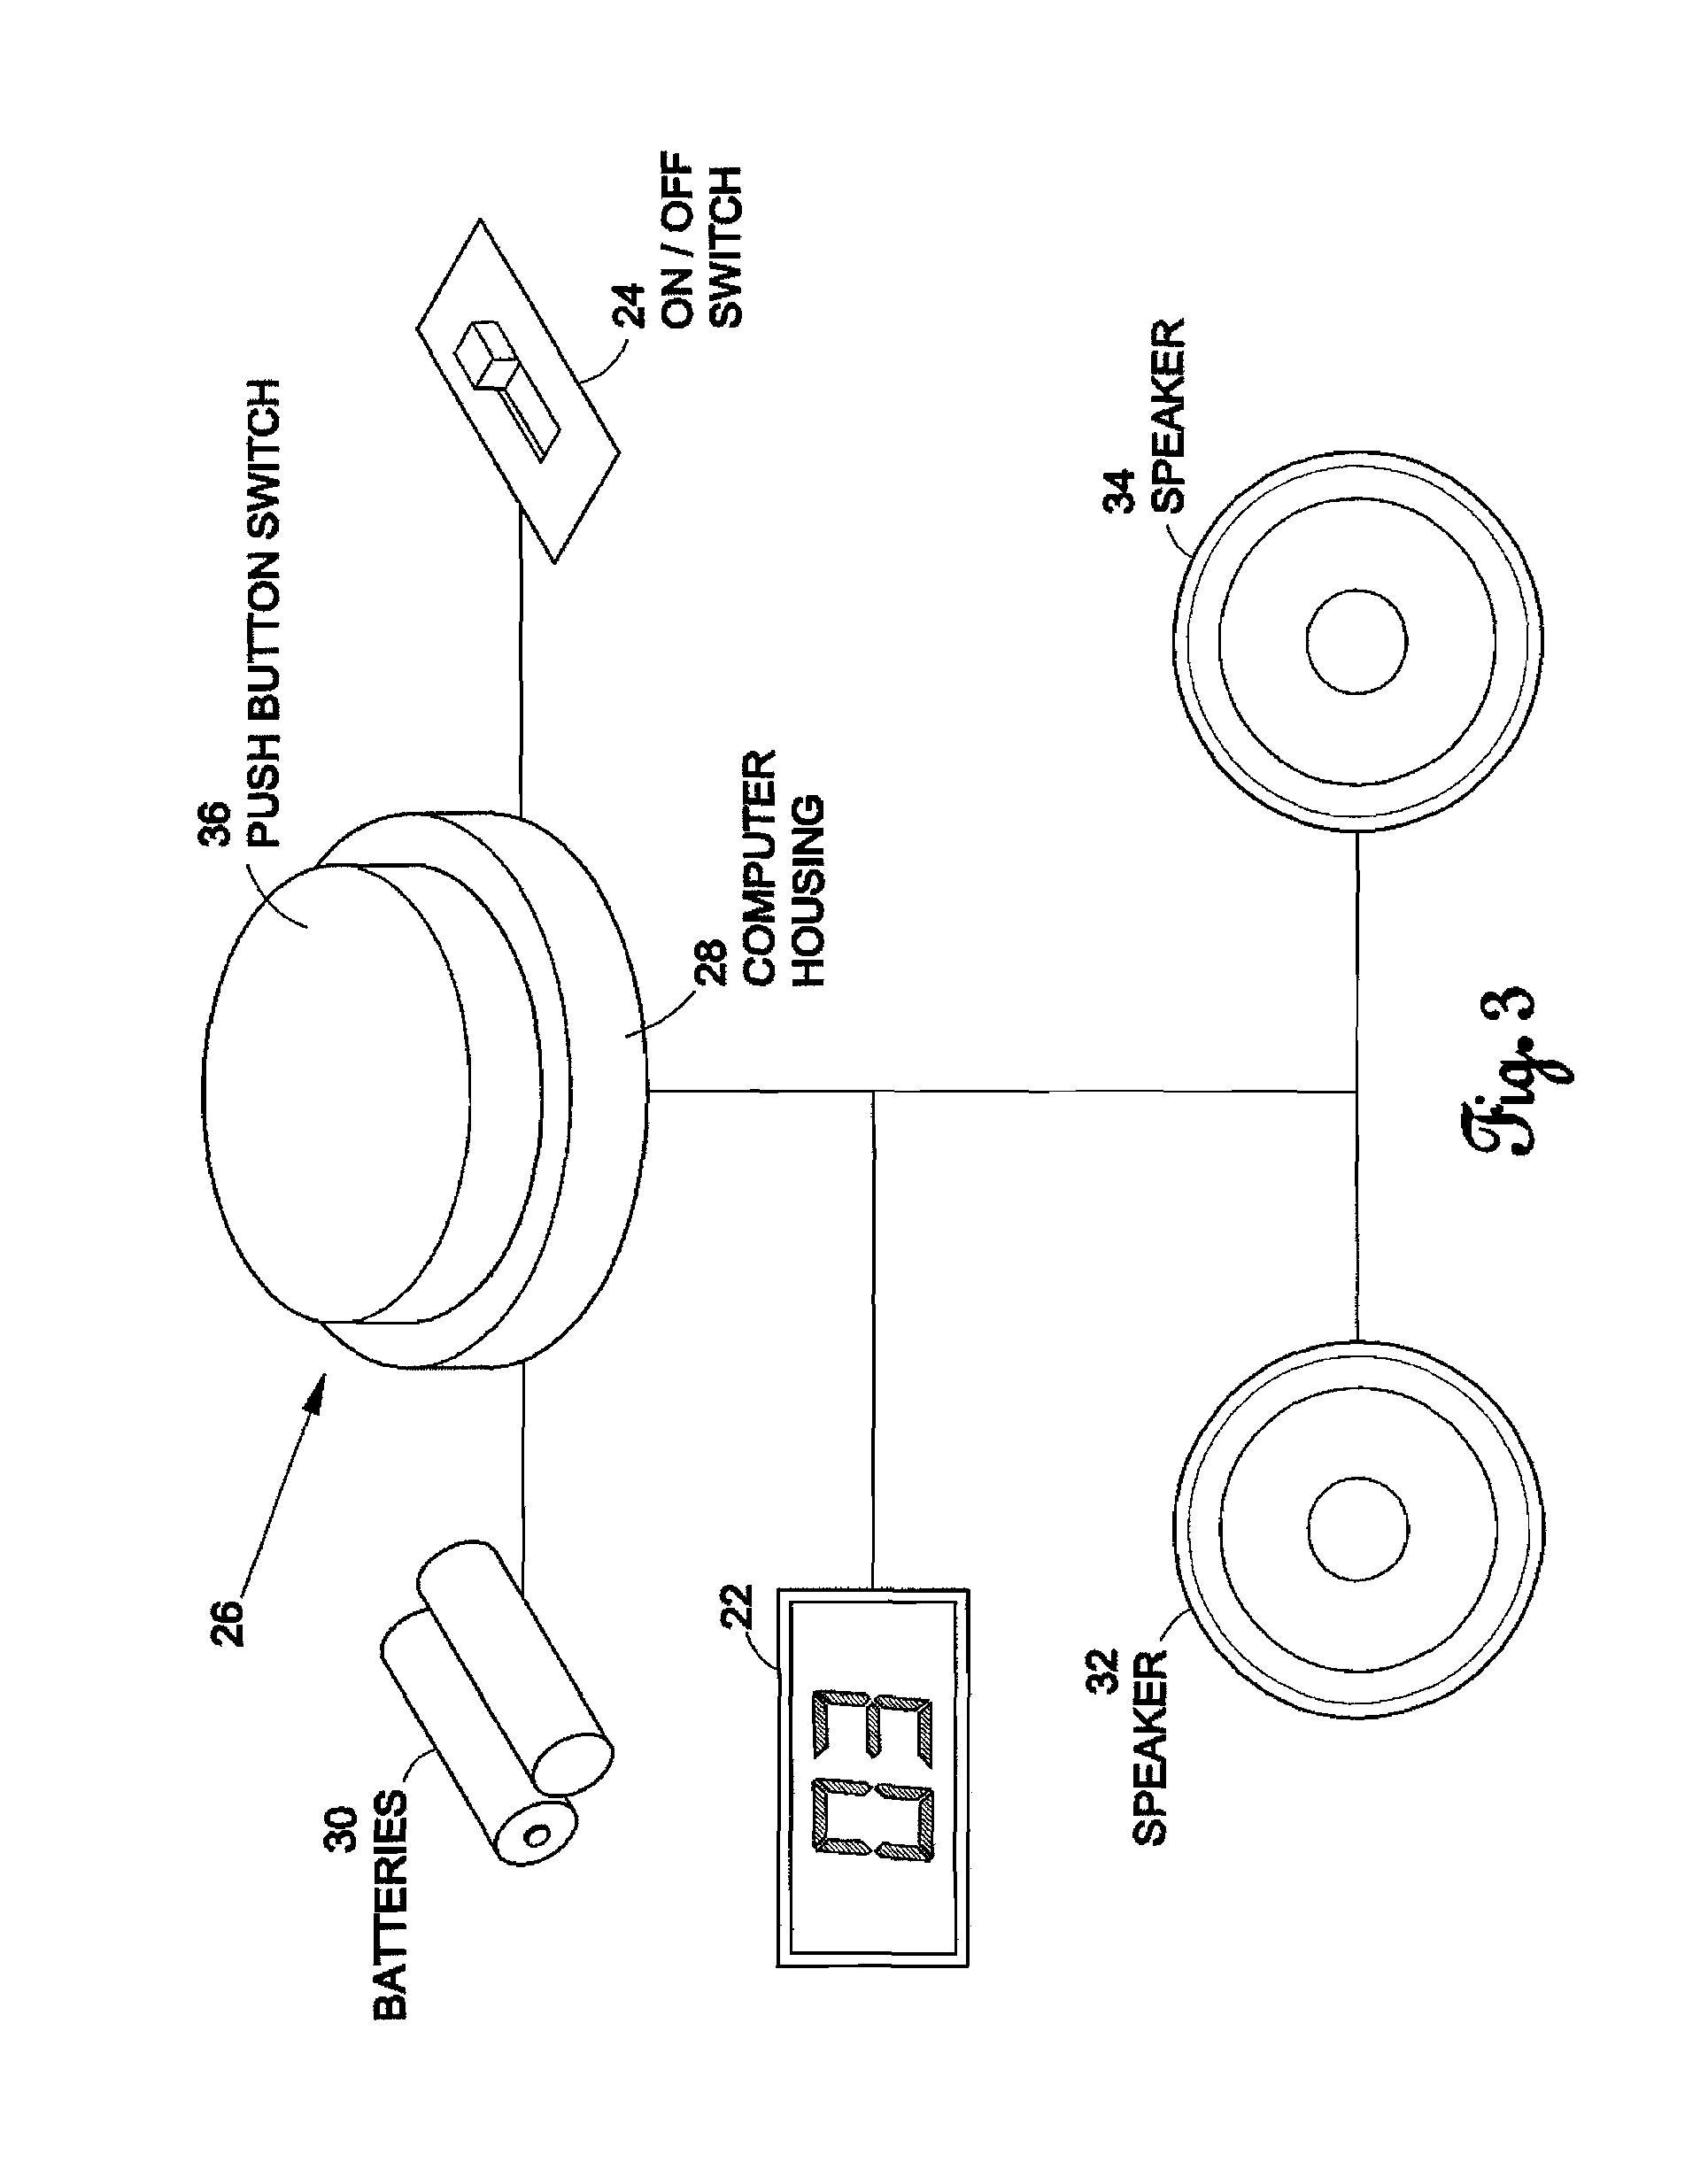 patent us20120157246 - football counting device